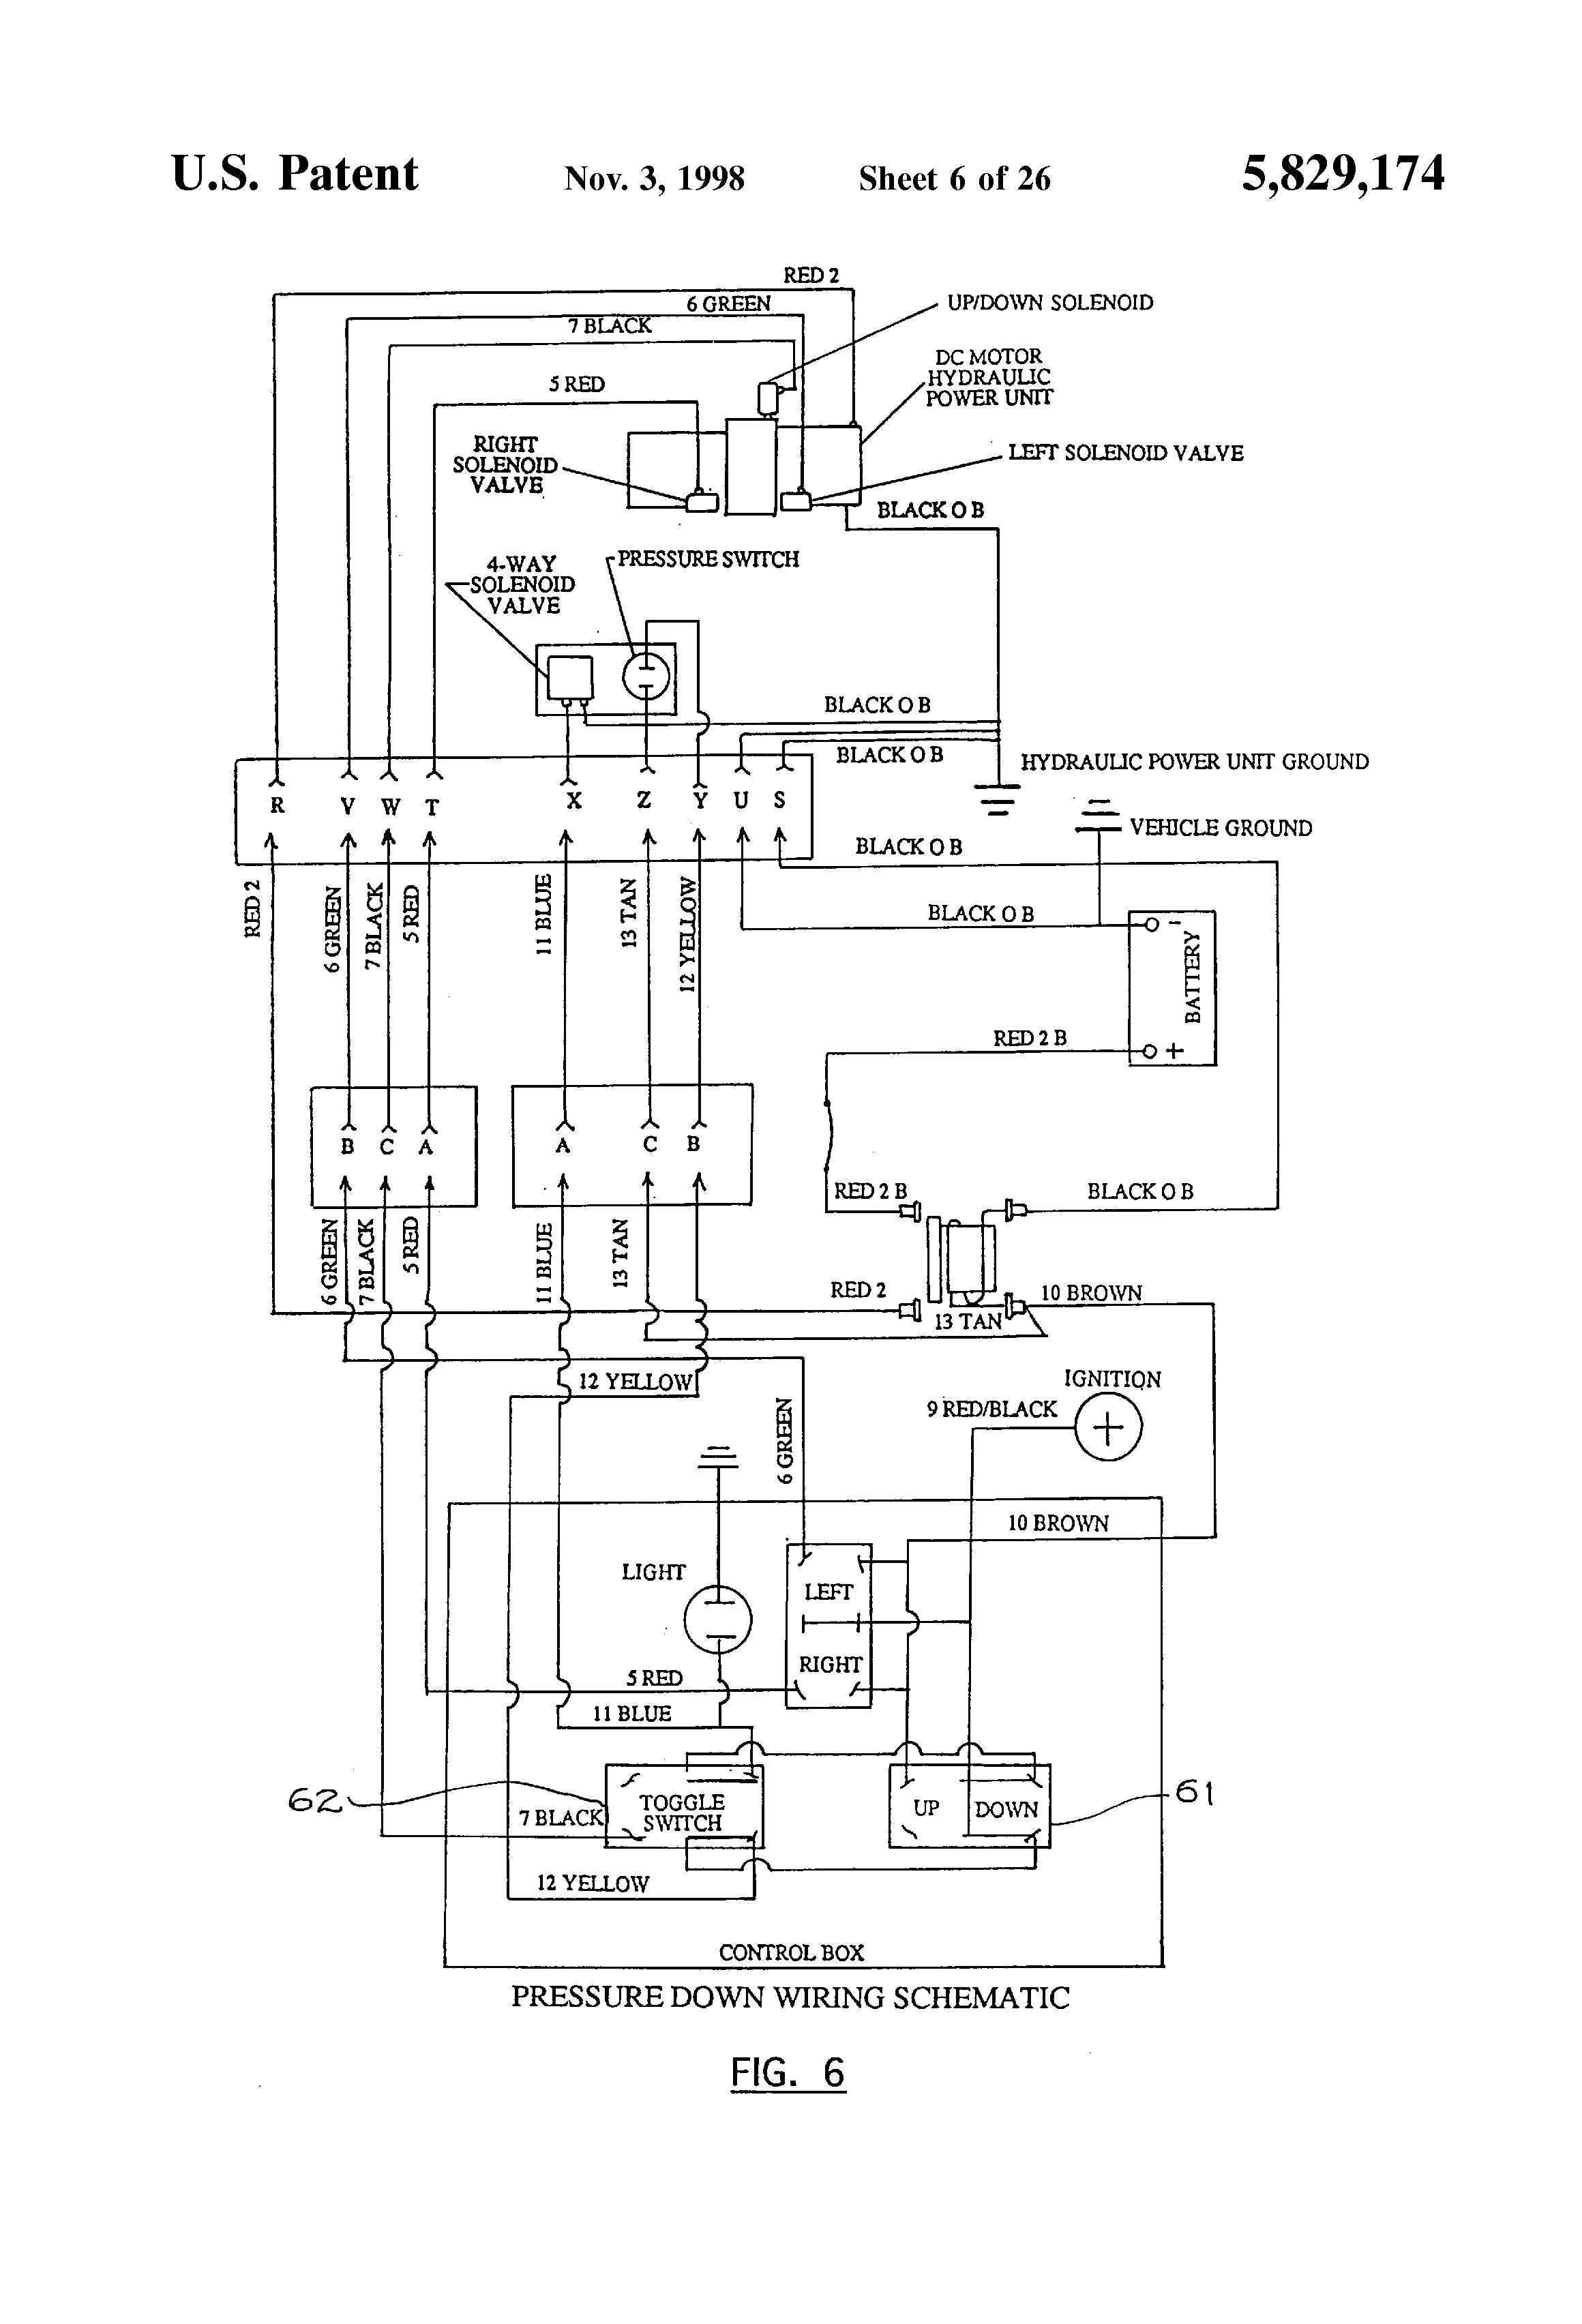 White Rodgers Thermostat 1f56 Wiring Diagram